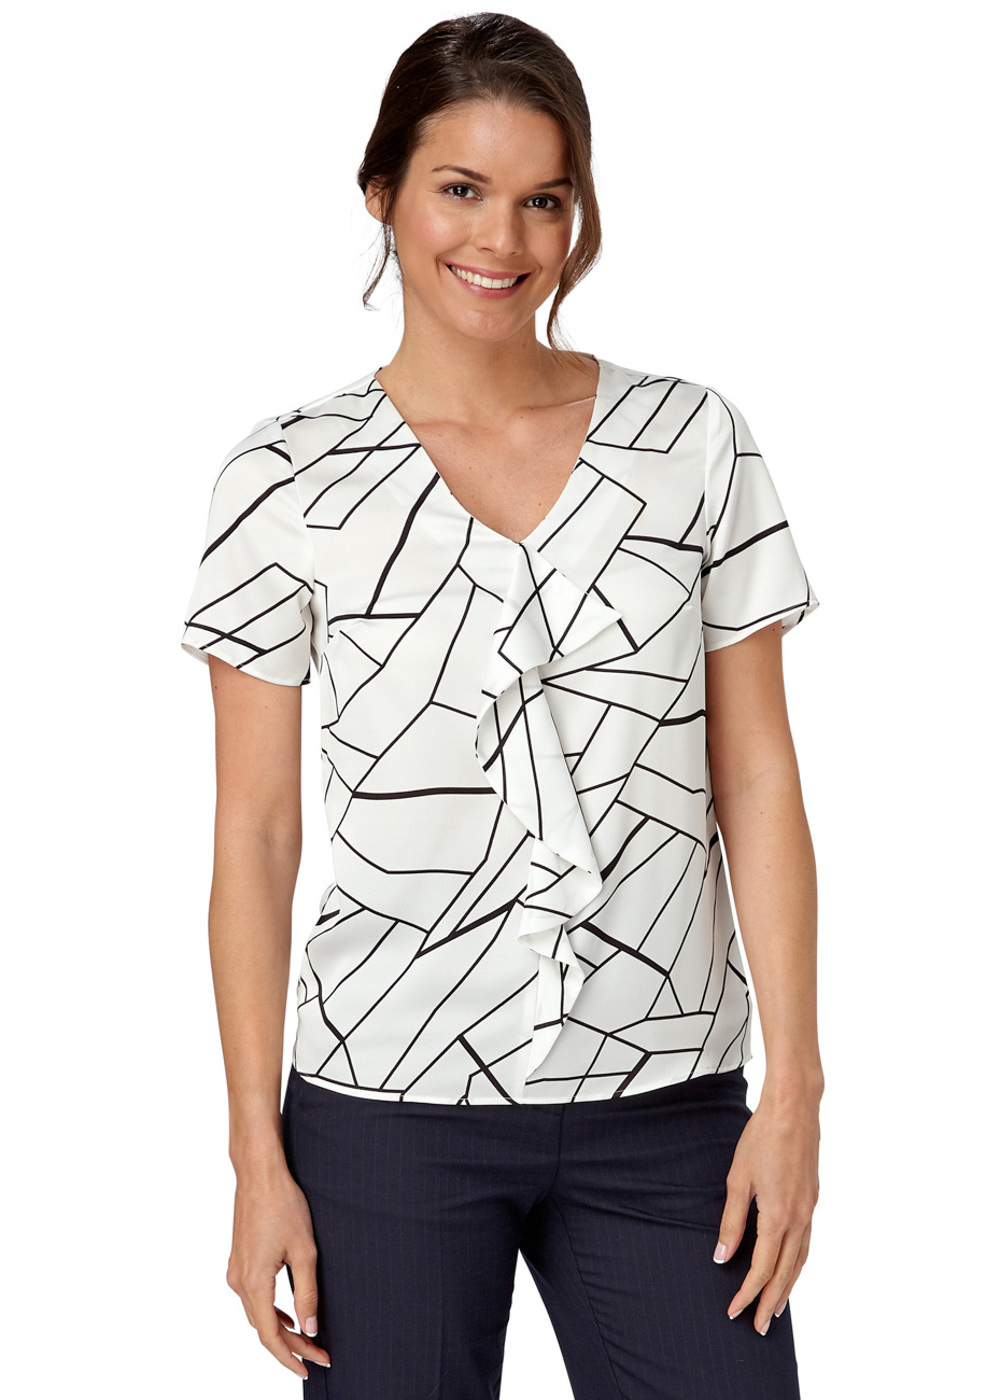 TILLY - Shatter Print Frill Front Shell Top